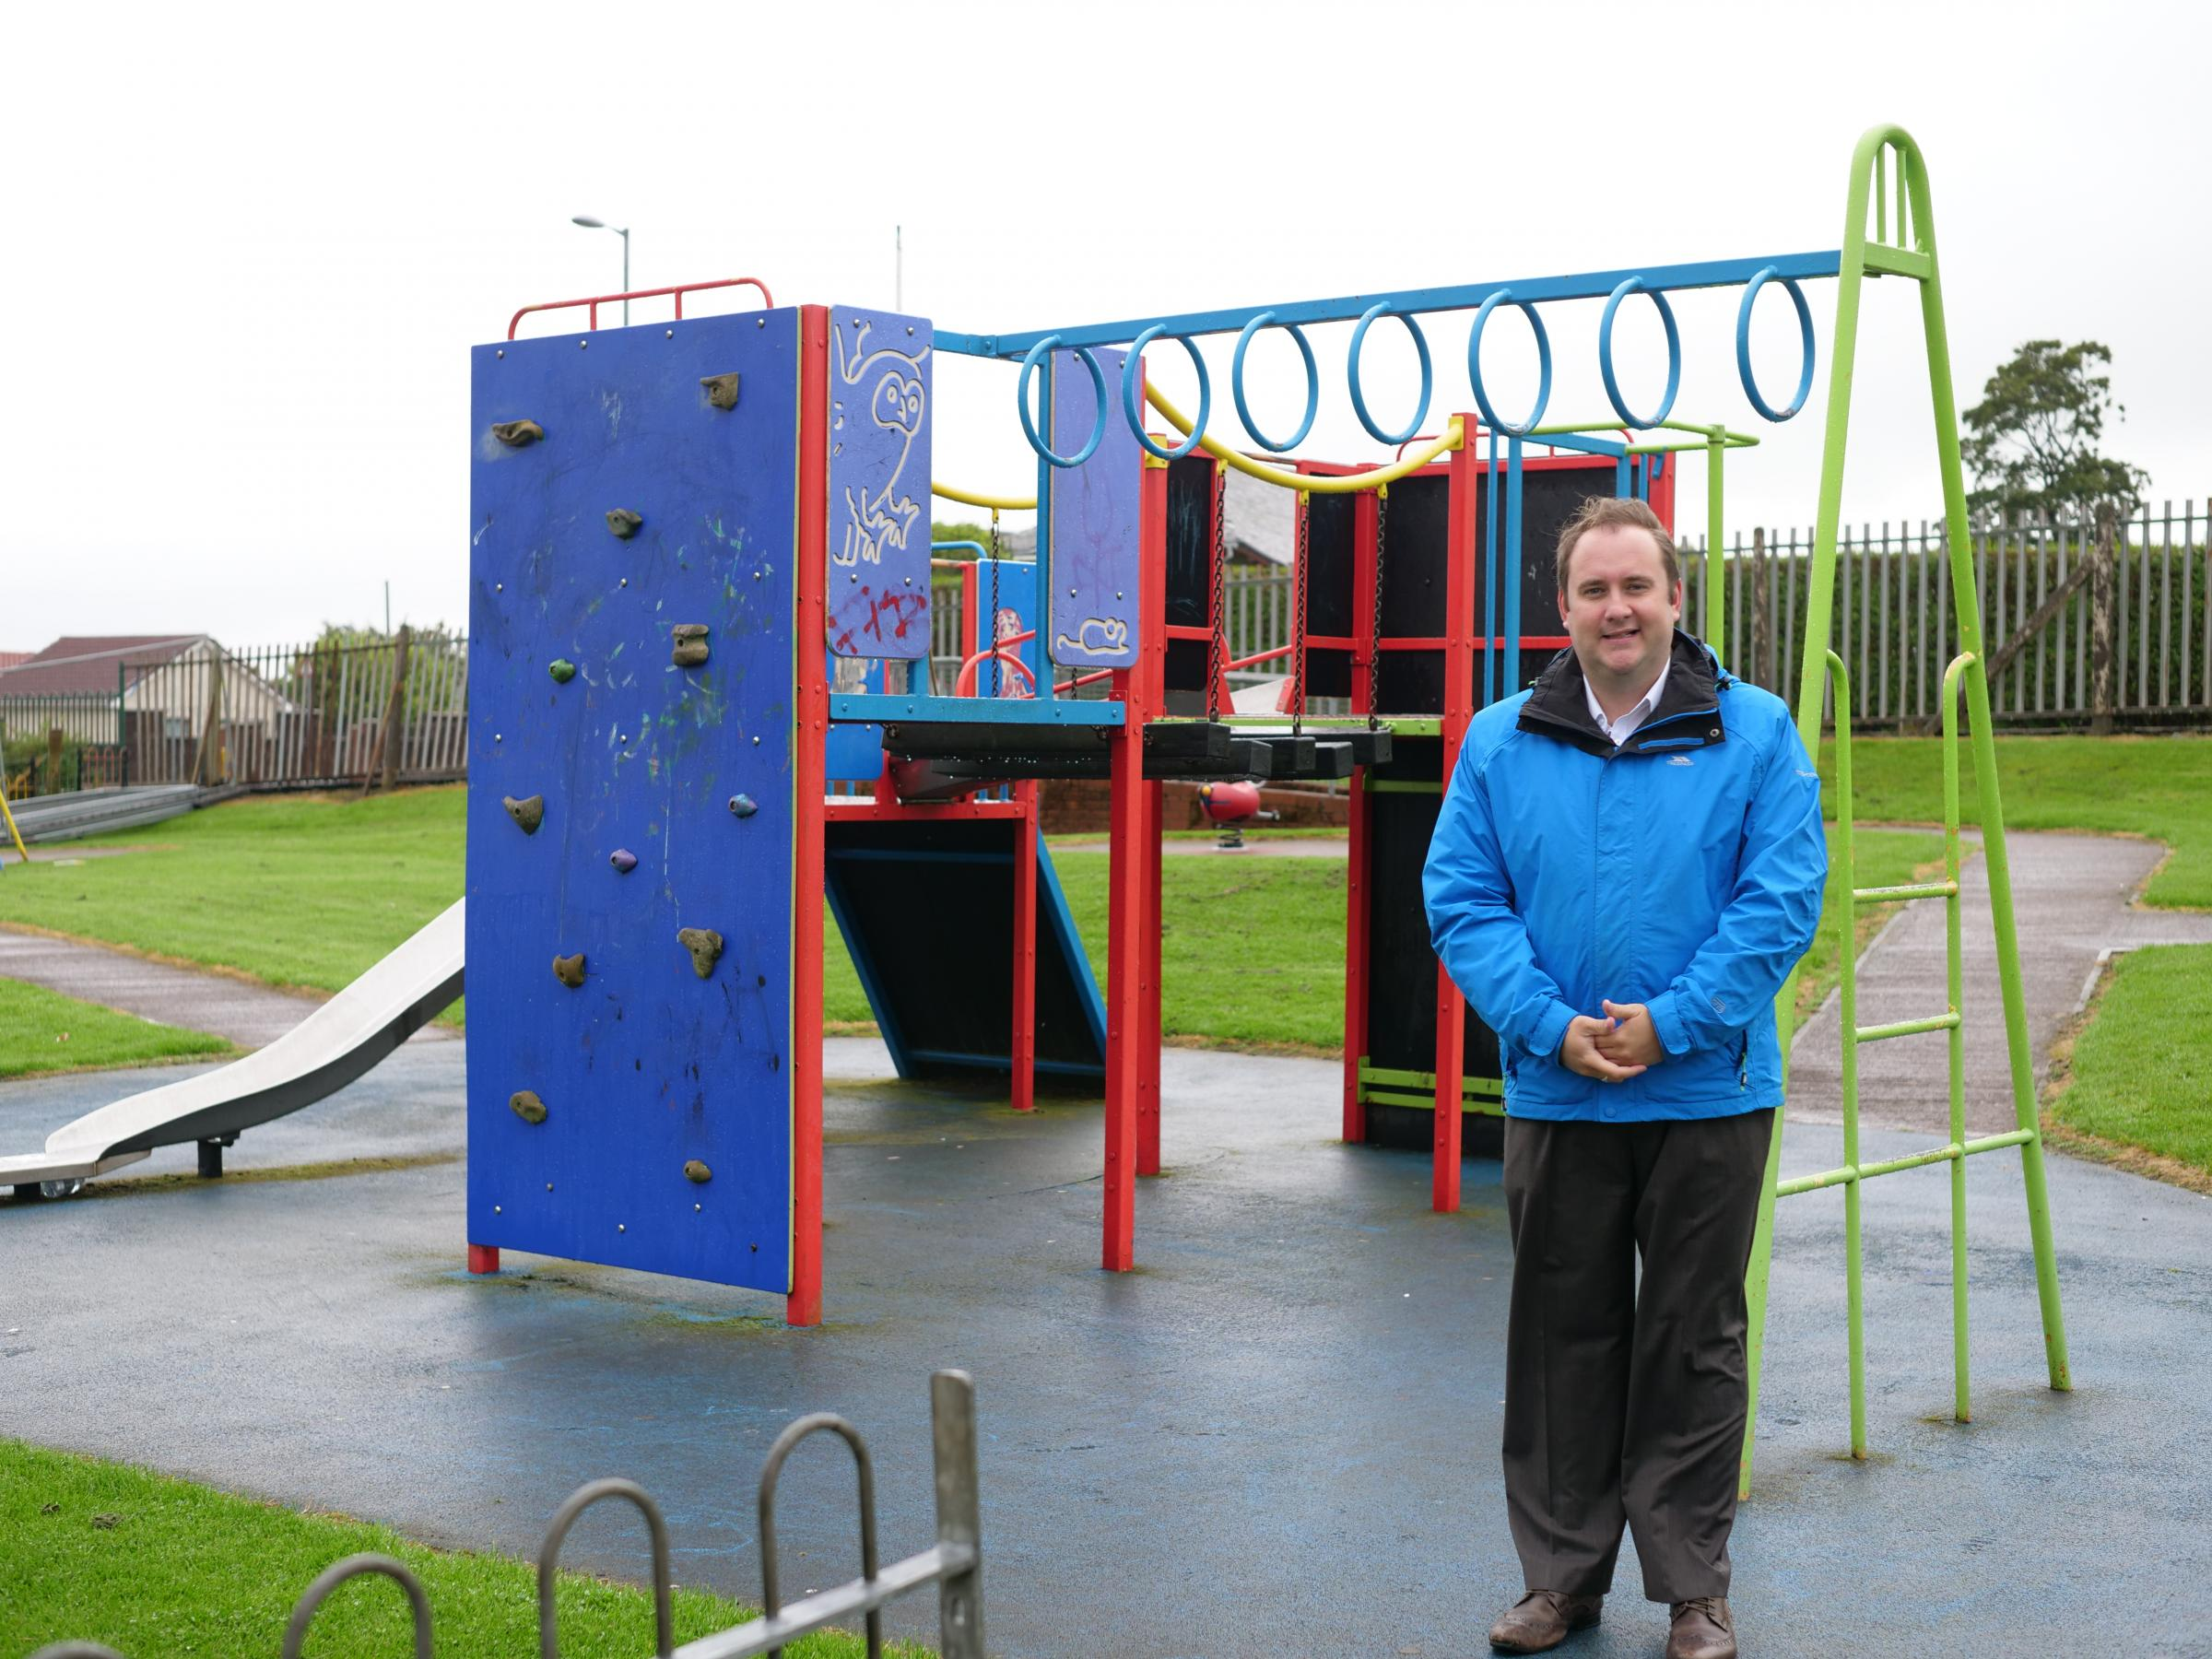 Councillor Paul O'Kane has welcomed the investment, which will include new play equipment